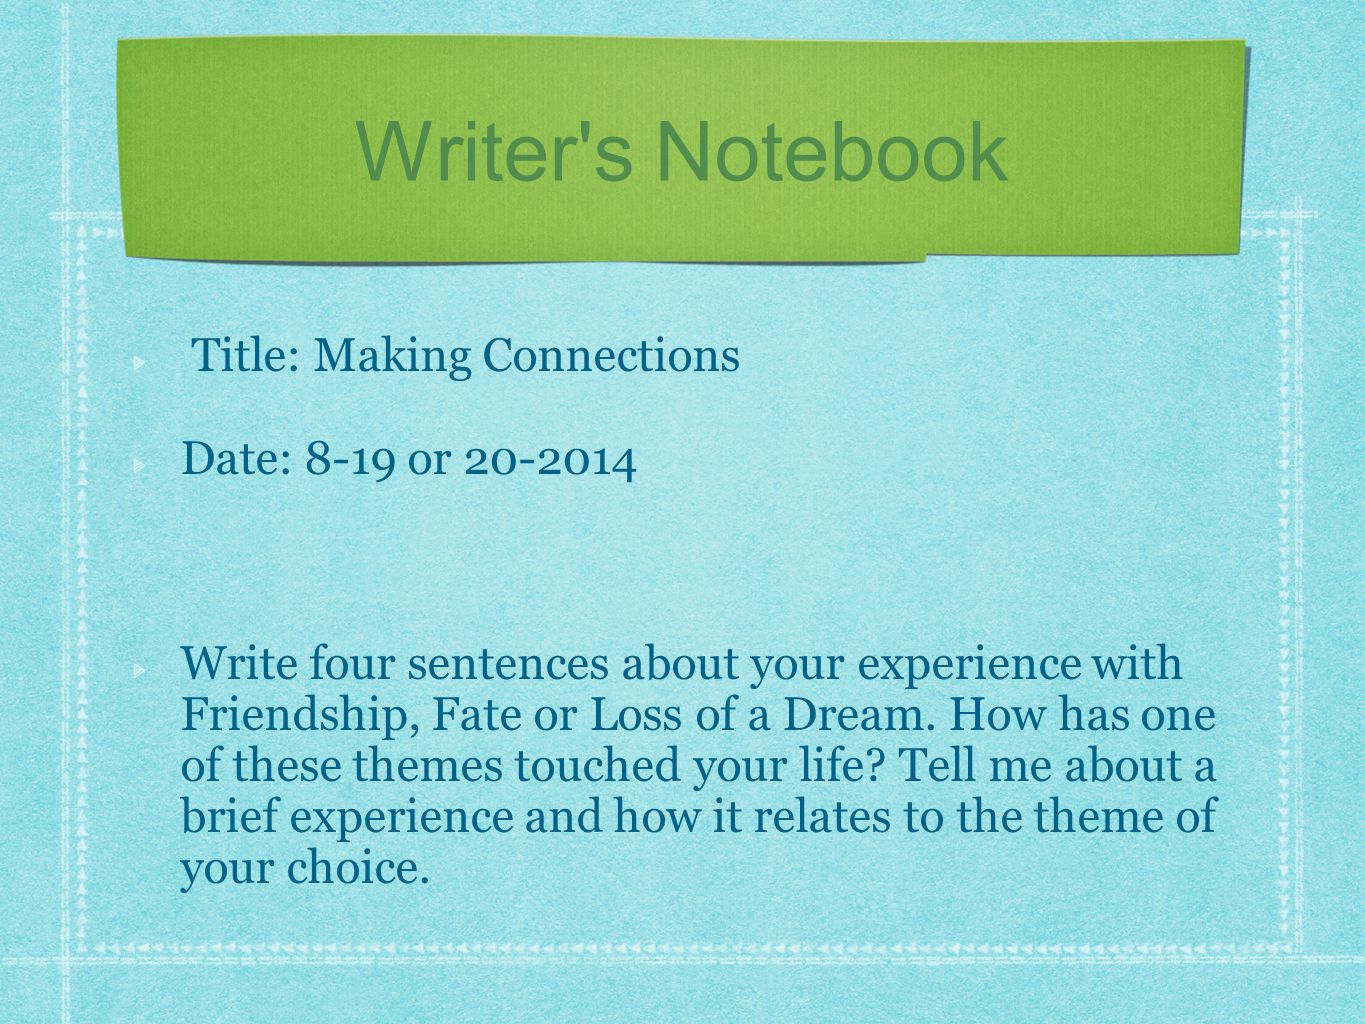 Title: Making Connections Date: 8-19 or 20-2014 Write four sentences about your experience with Friendship, Fate or Loss of a Dream. How has one of th